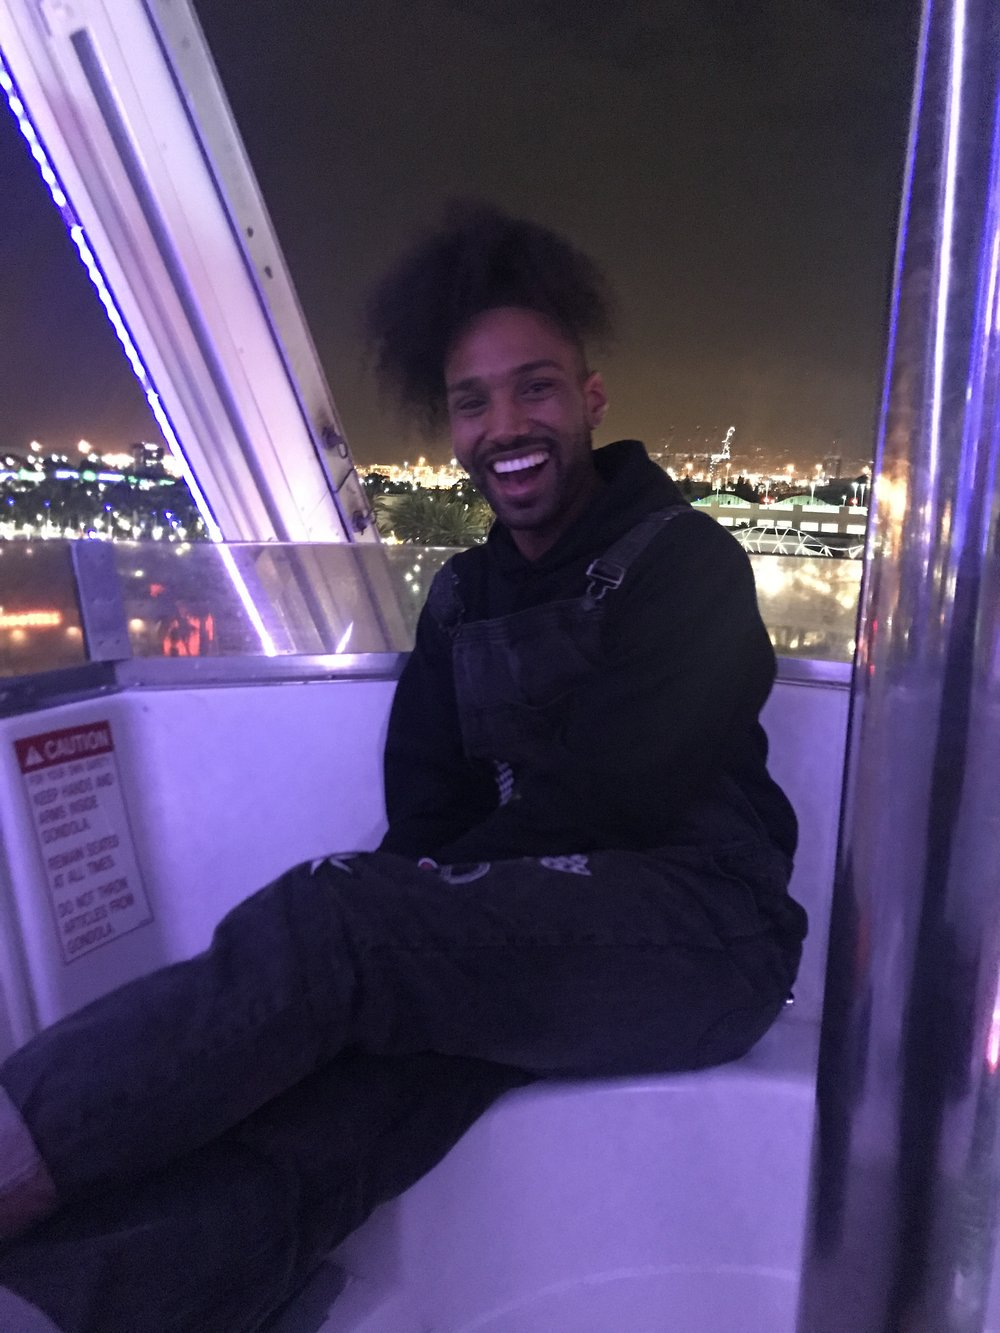 Wrapped Complex Con 2017 with a ride on the ferris wheel